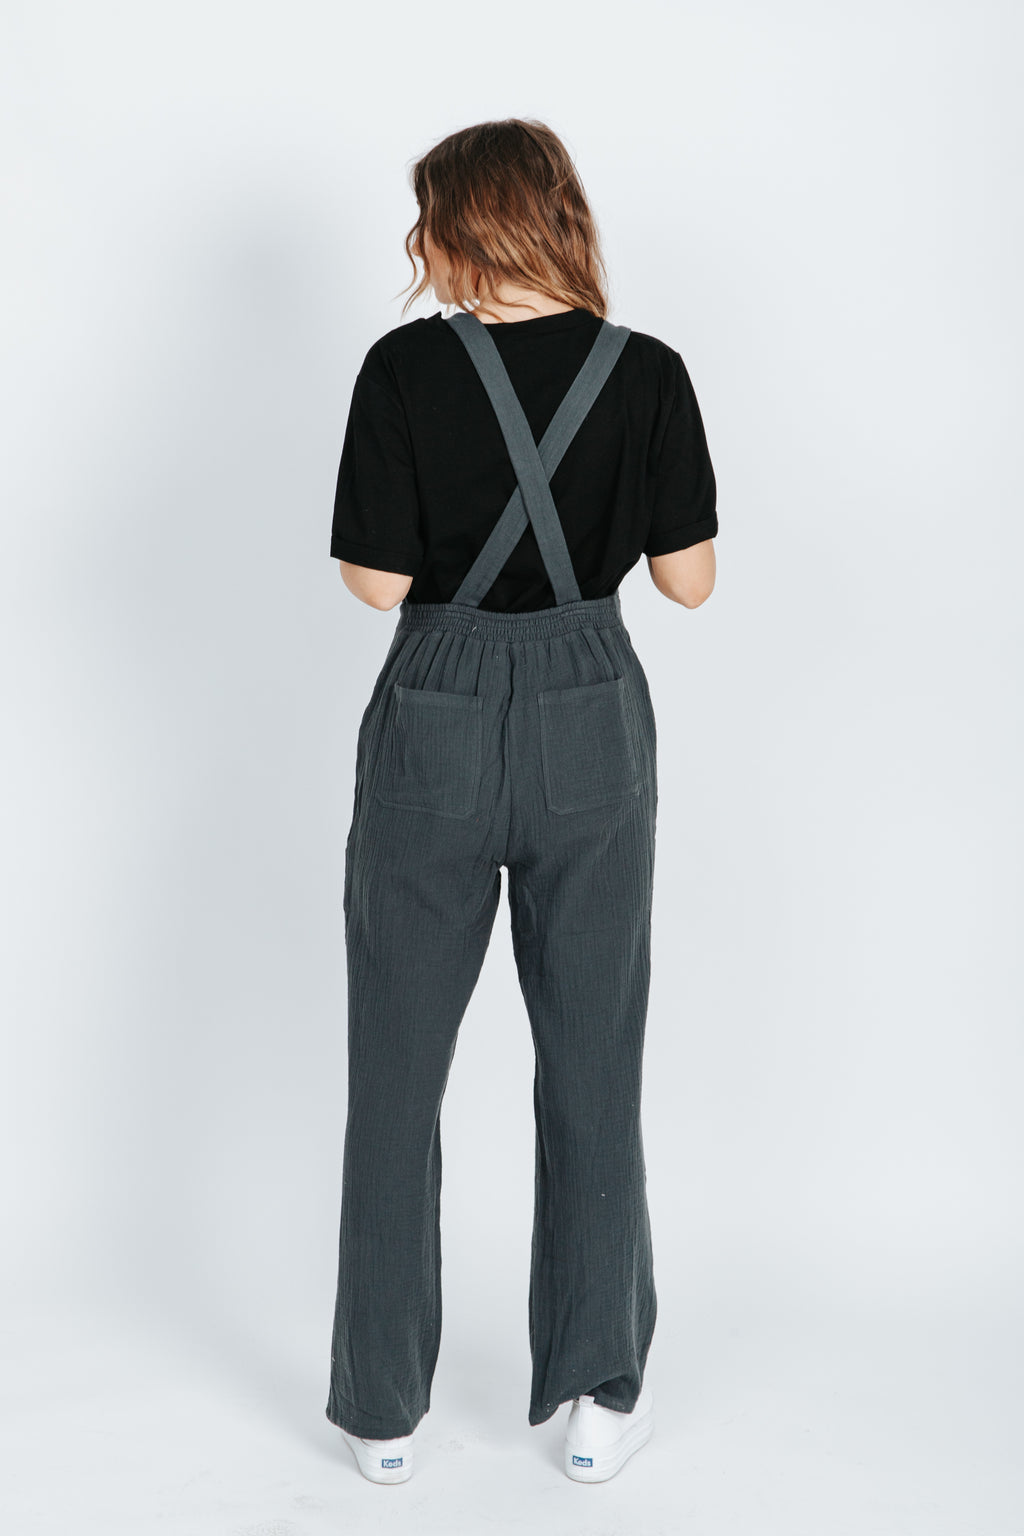 The Katey Tank Jumpsuit in Charcoal